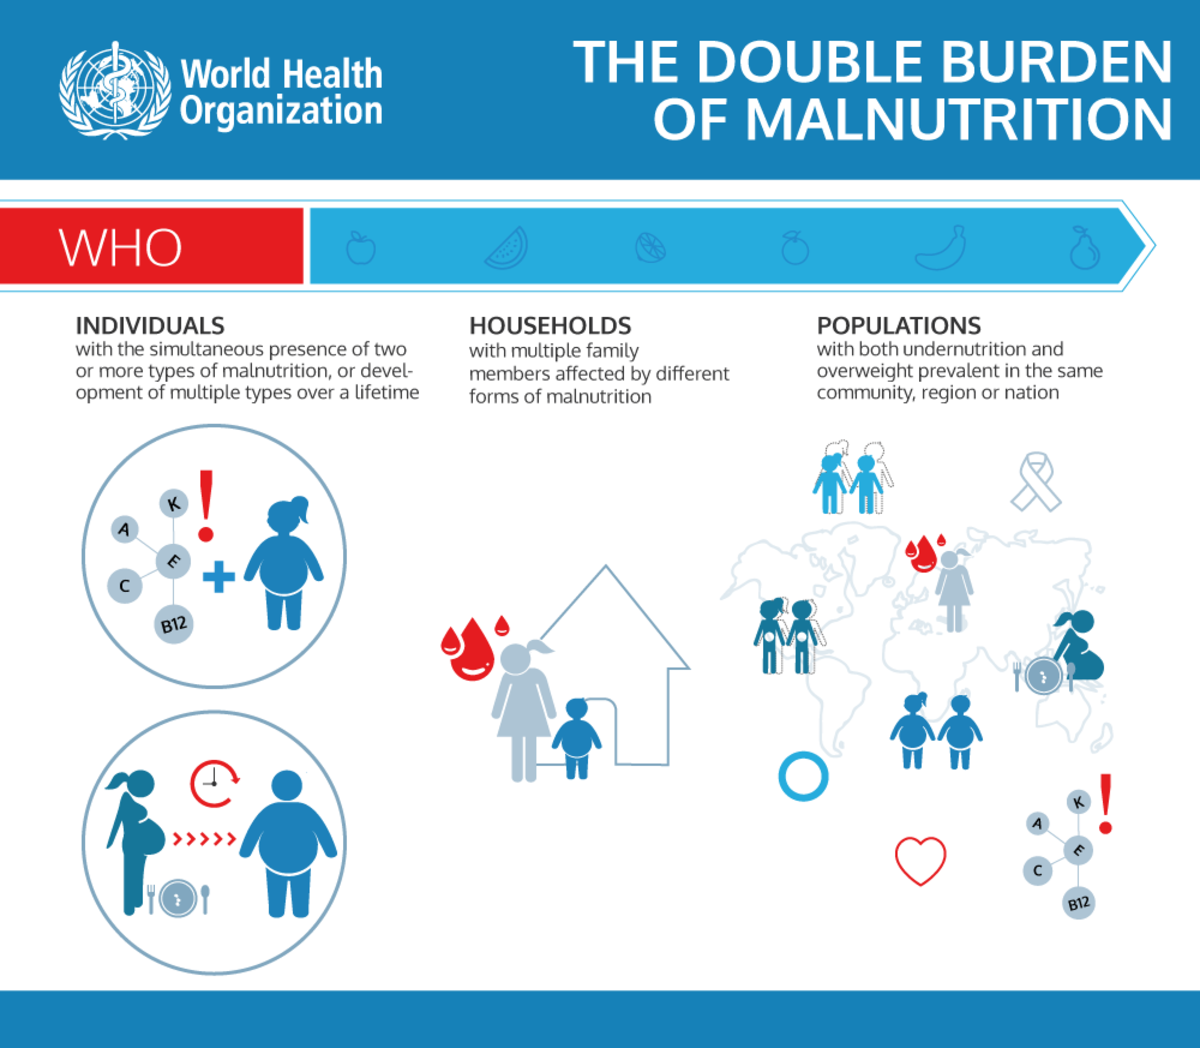 Policy Brief by WHO showing the three levels where the Double Burden of Malnutrition manifests.